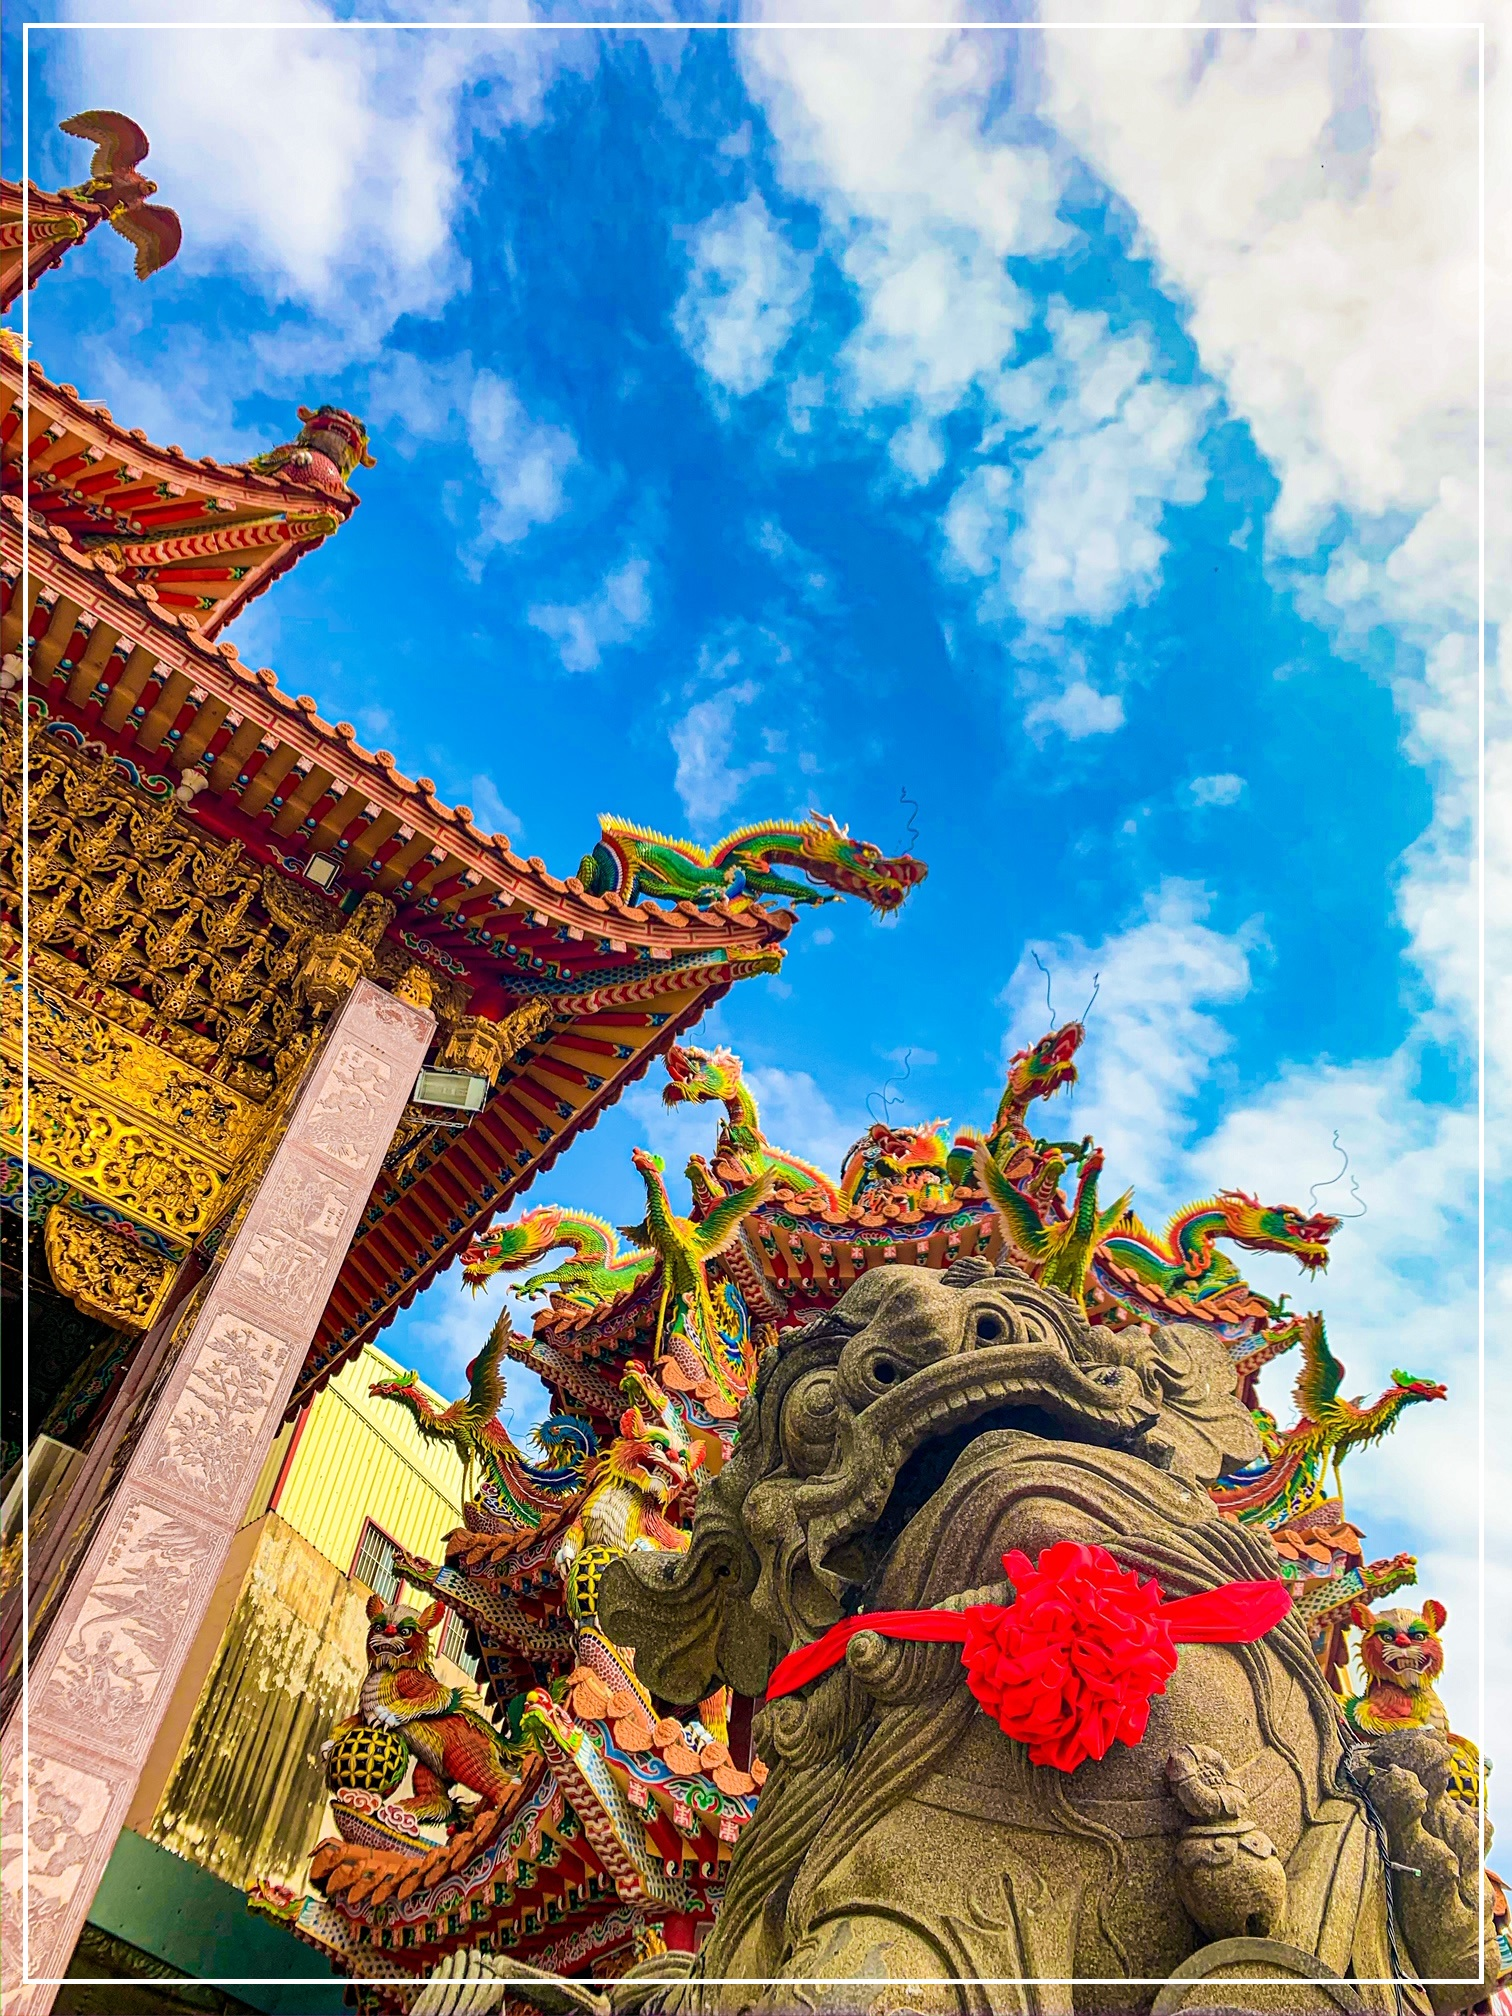 The dragons of Taiwan tainan drakjpg